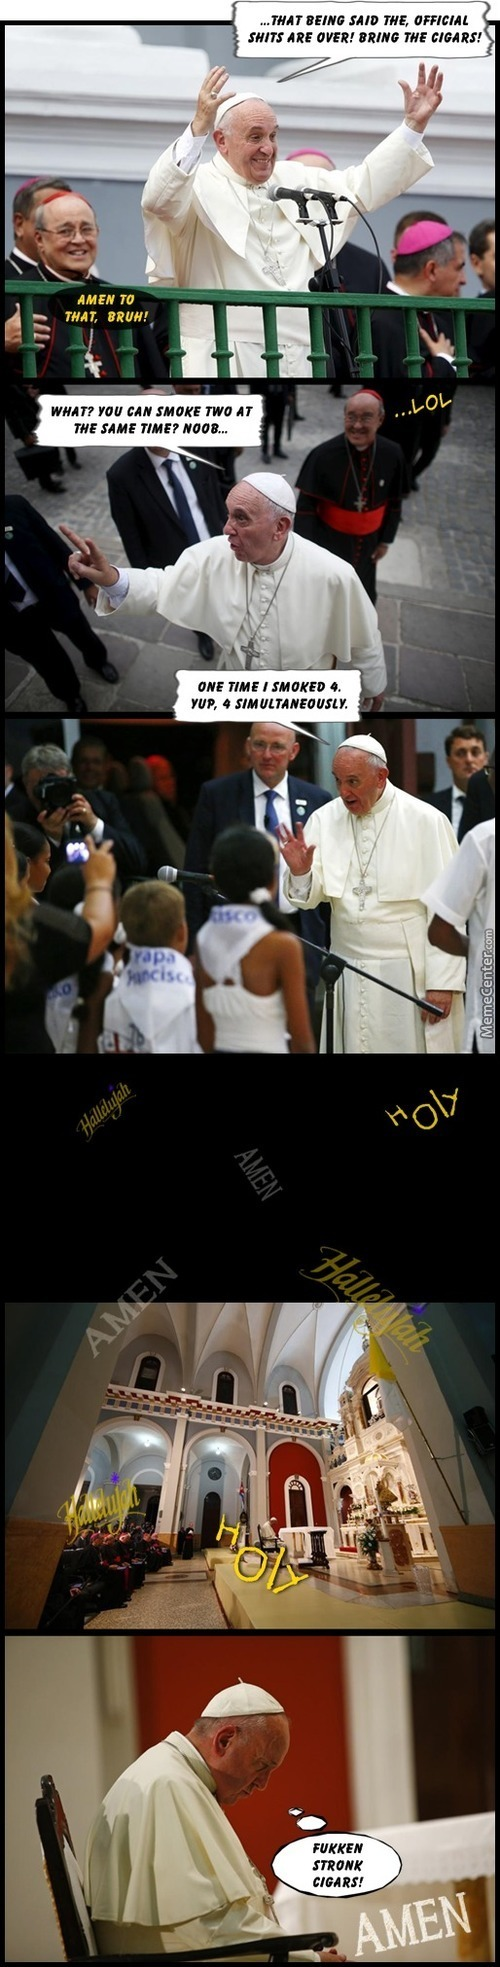 And Them, He Pope Went To Cuba